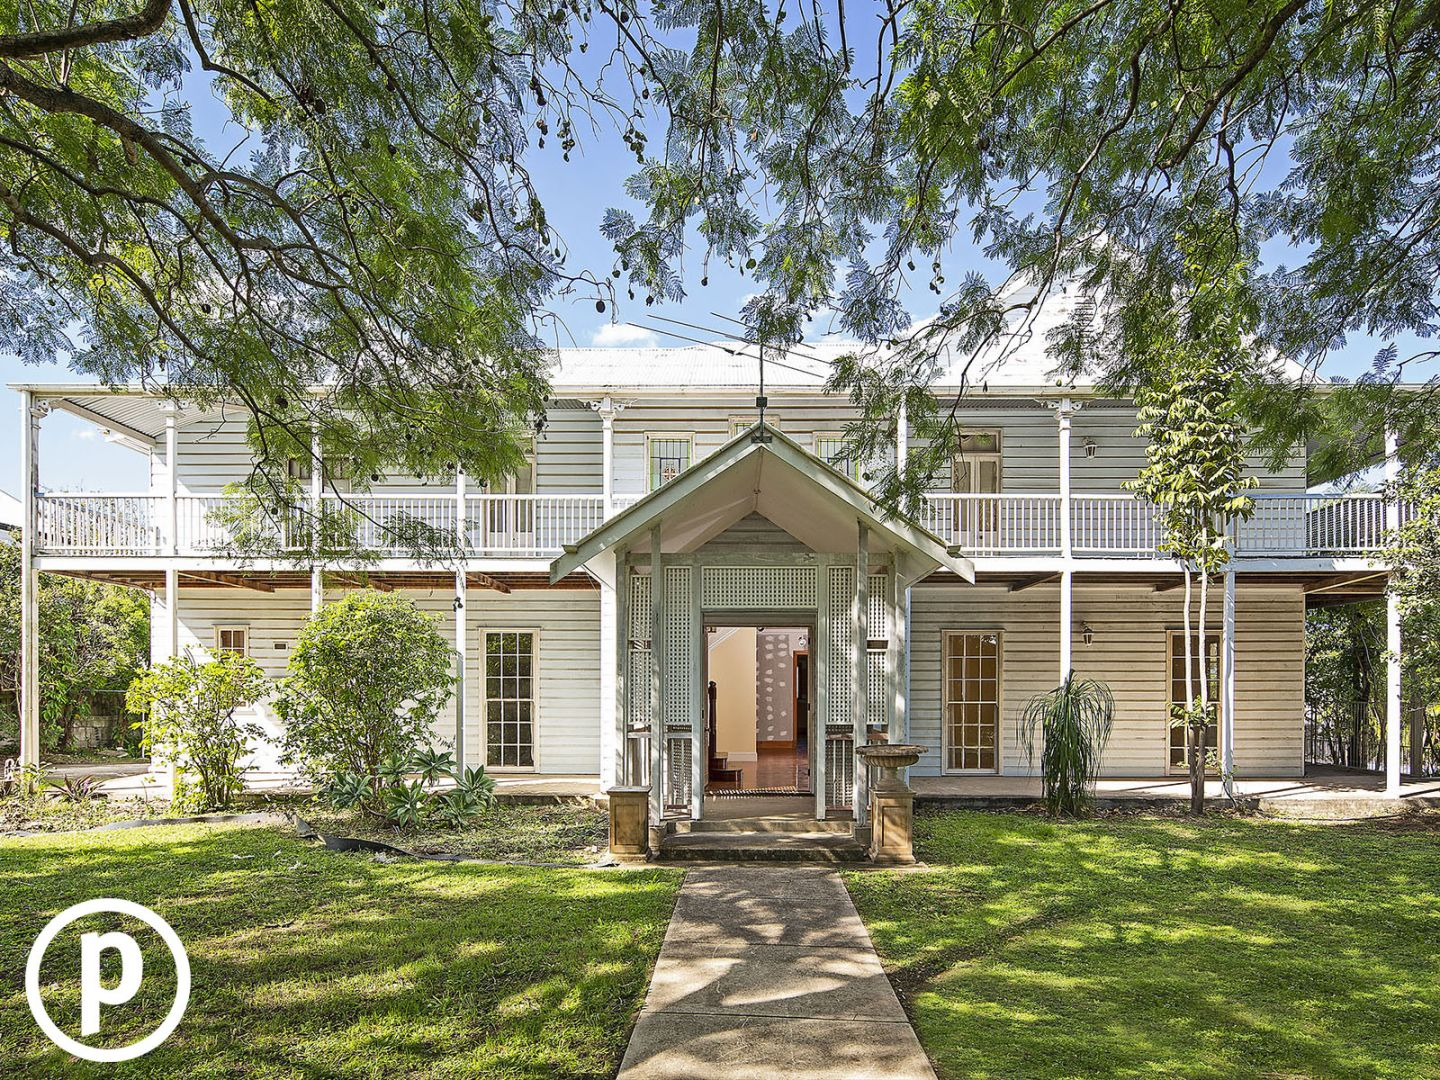 This five-bedroom, two-bathroom house at 75 Pring Street in Hendra is on the market for the first time in 25 years.